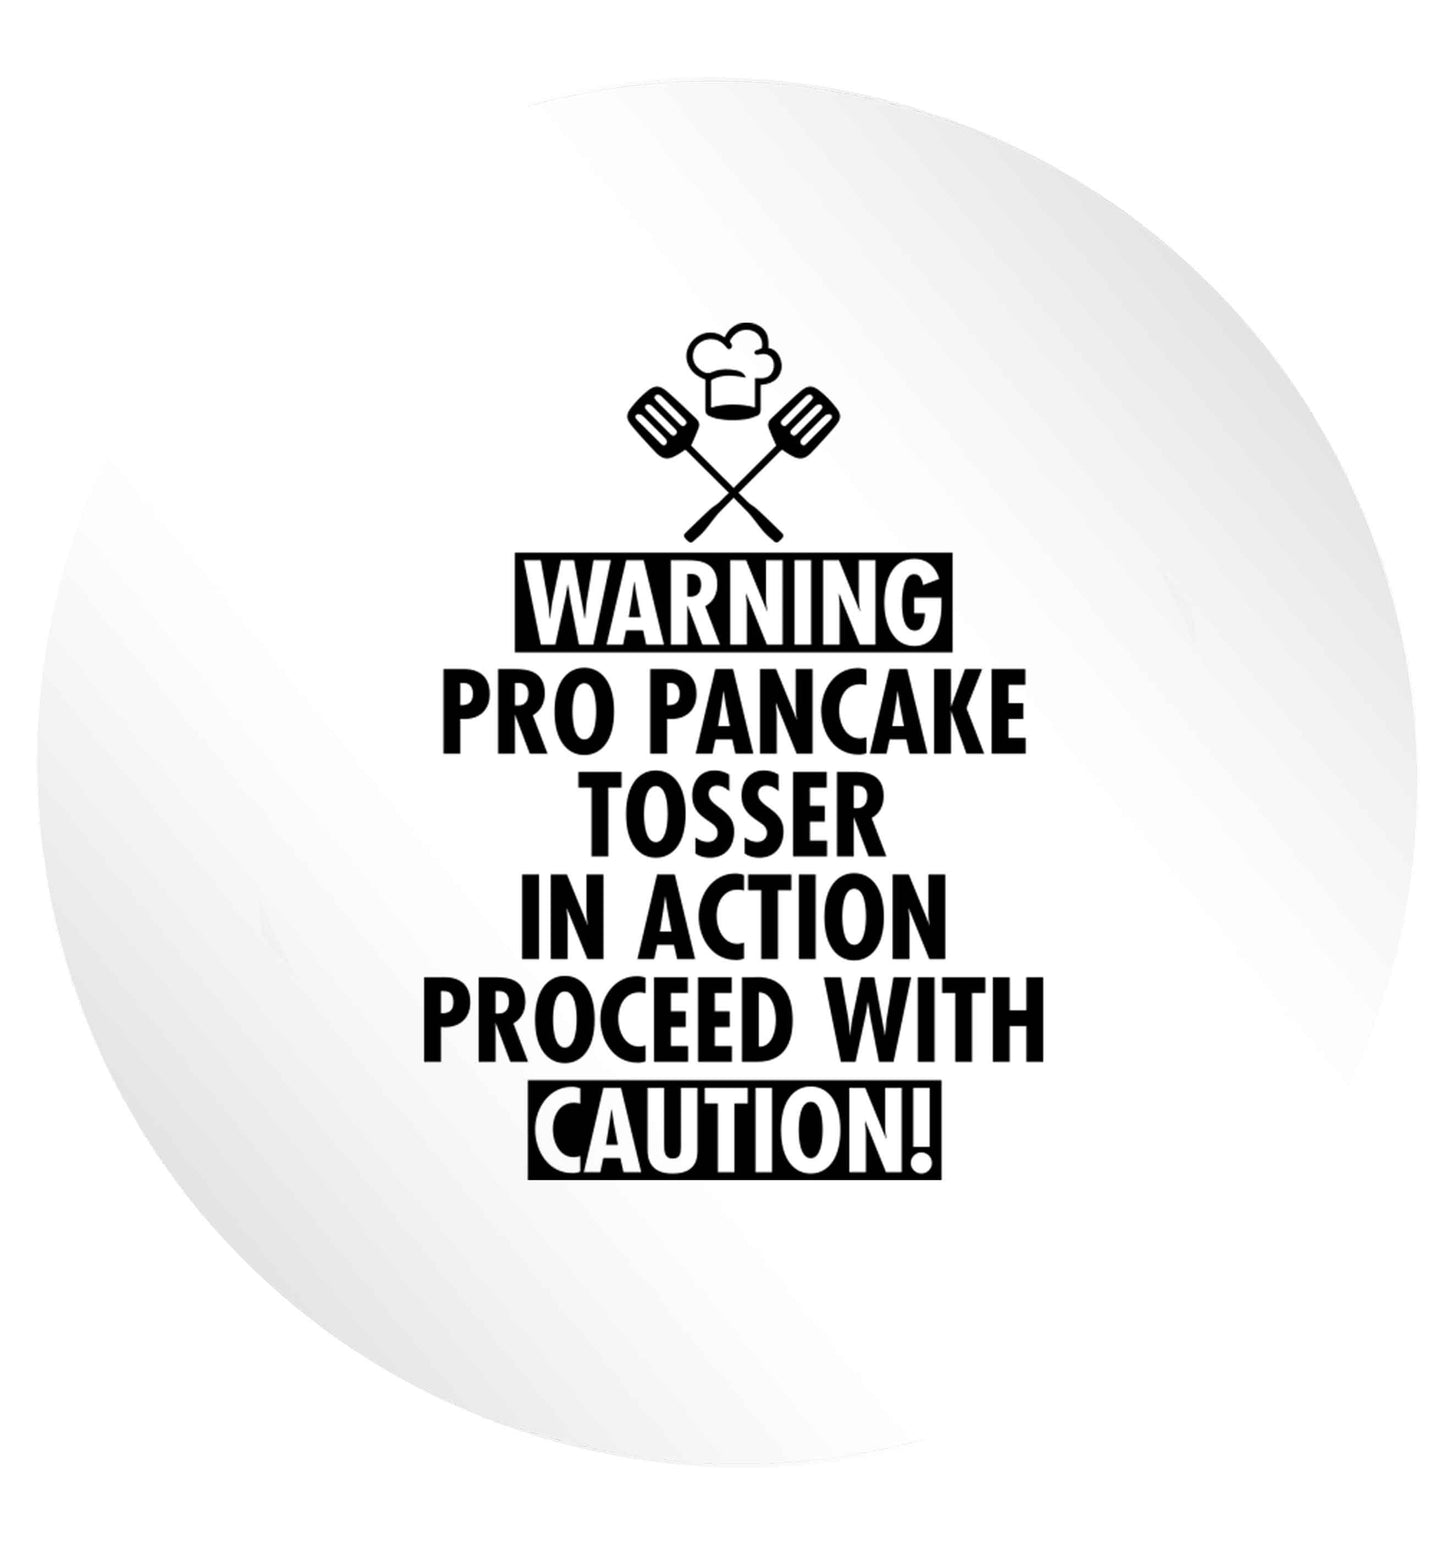 Warning pro pancake tosser in action proceed with caution 24 @ 45mm matt circle stickers